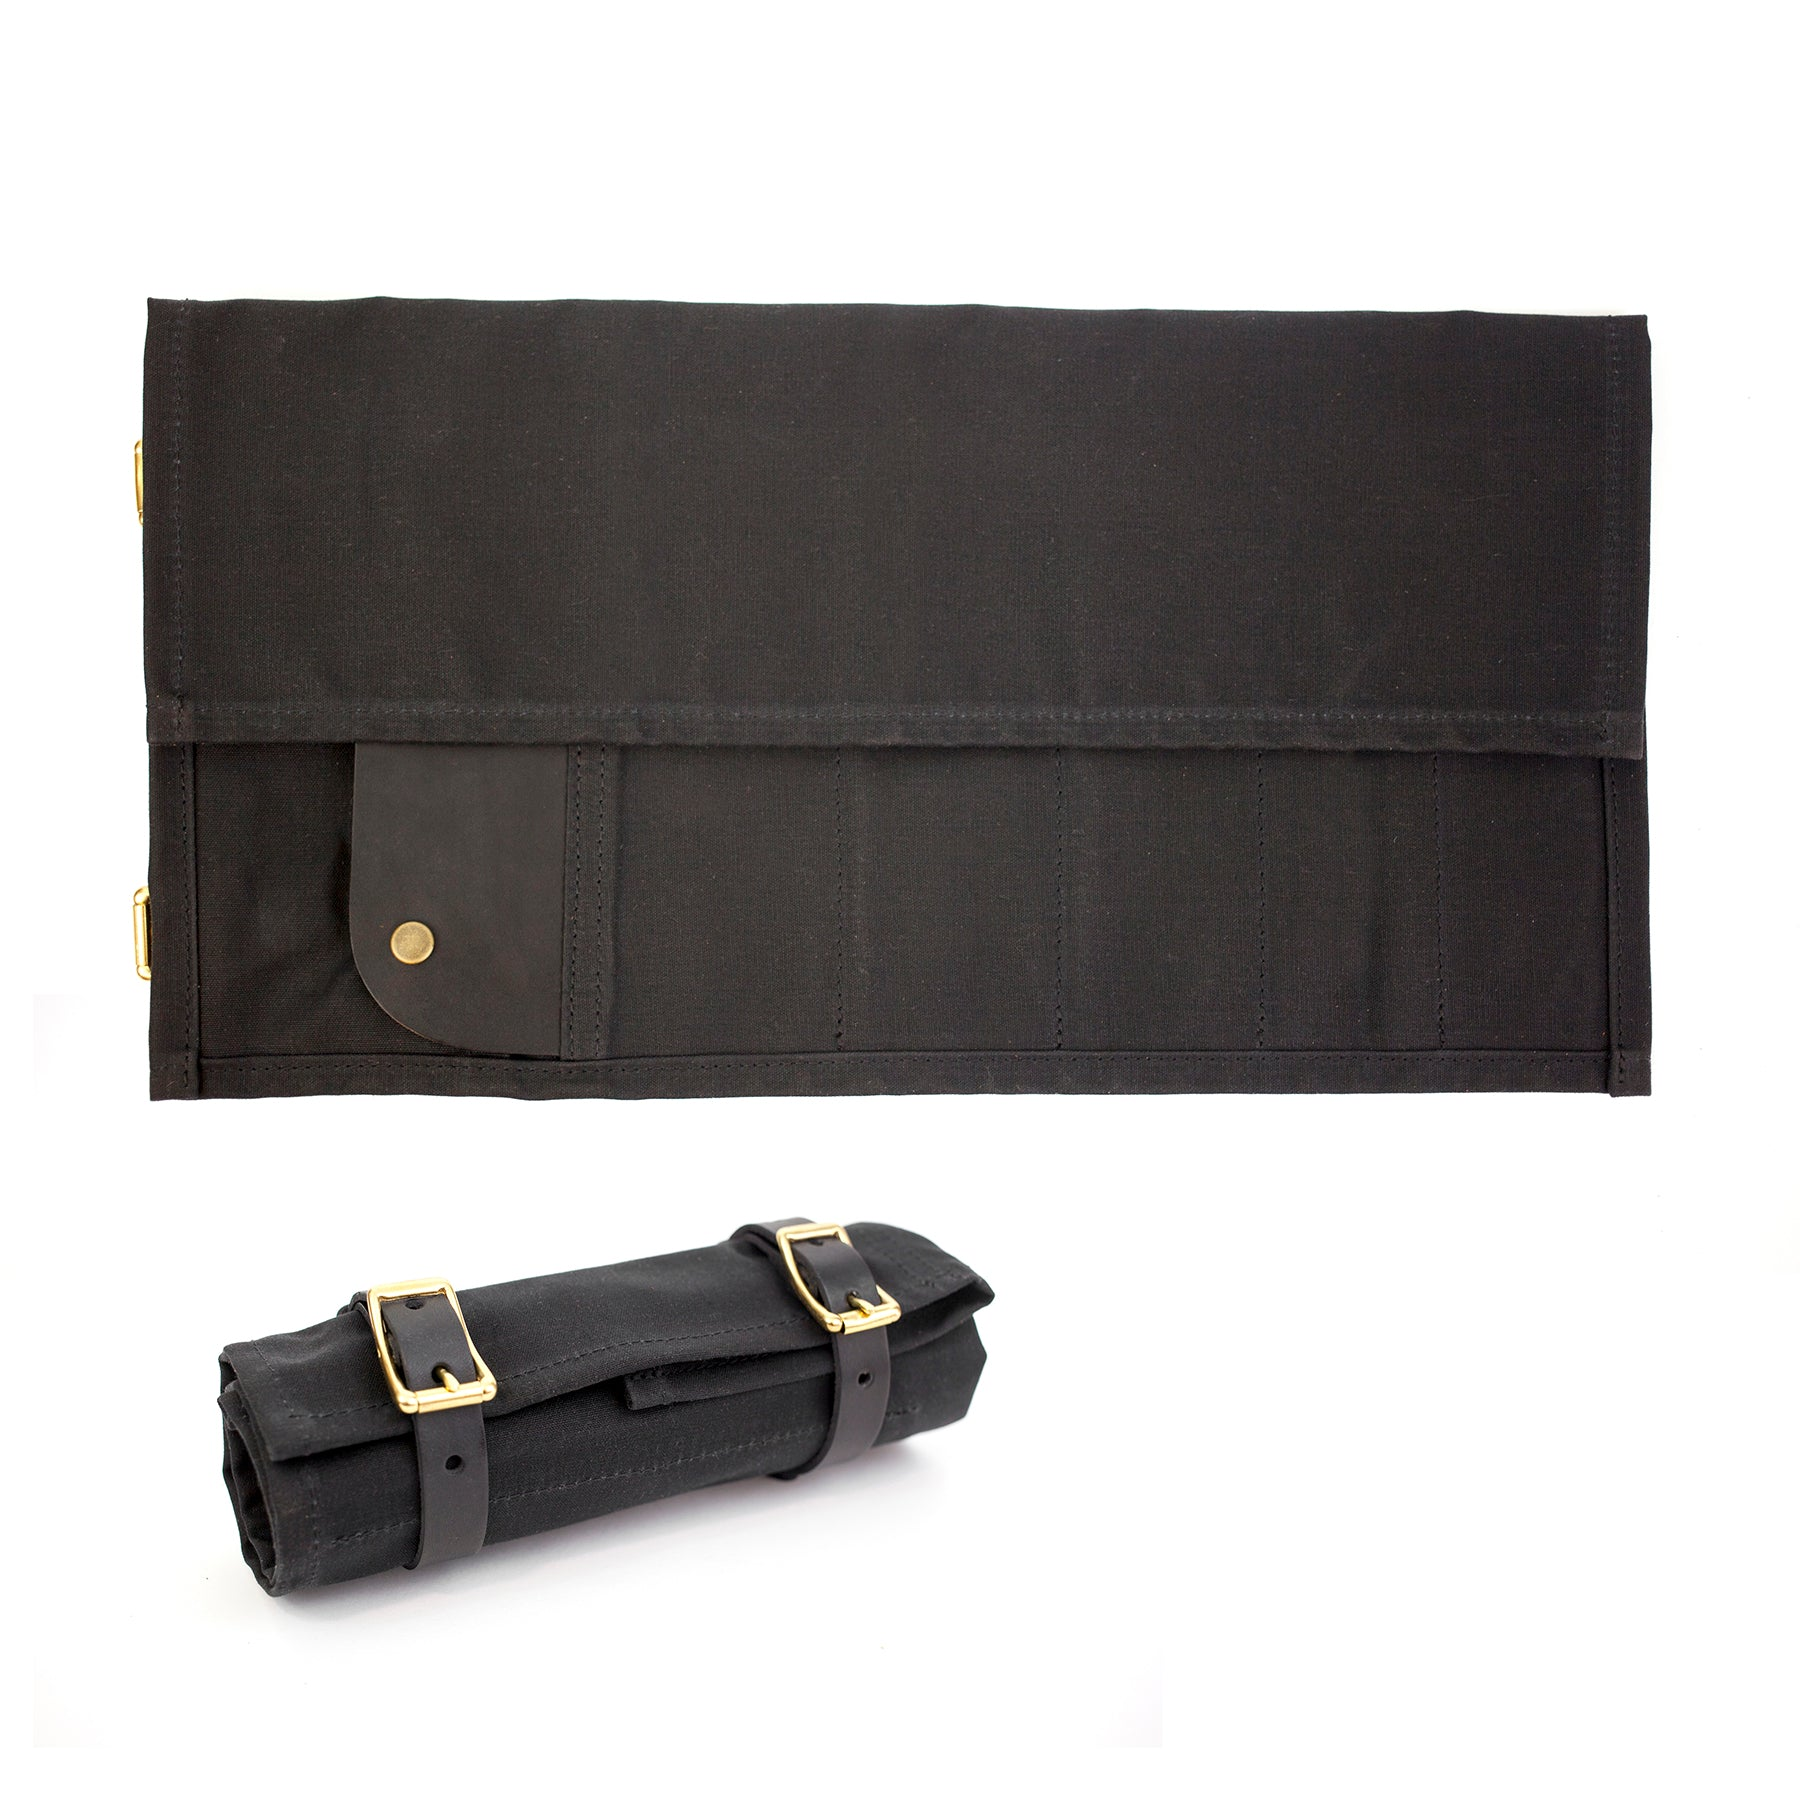 Landseer Tool Roll - Black